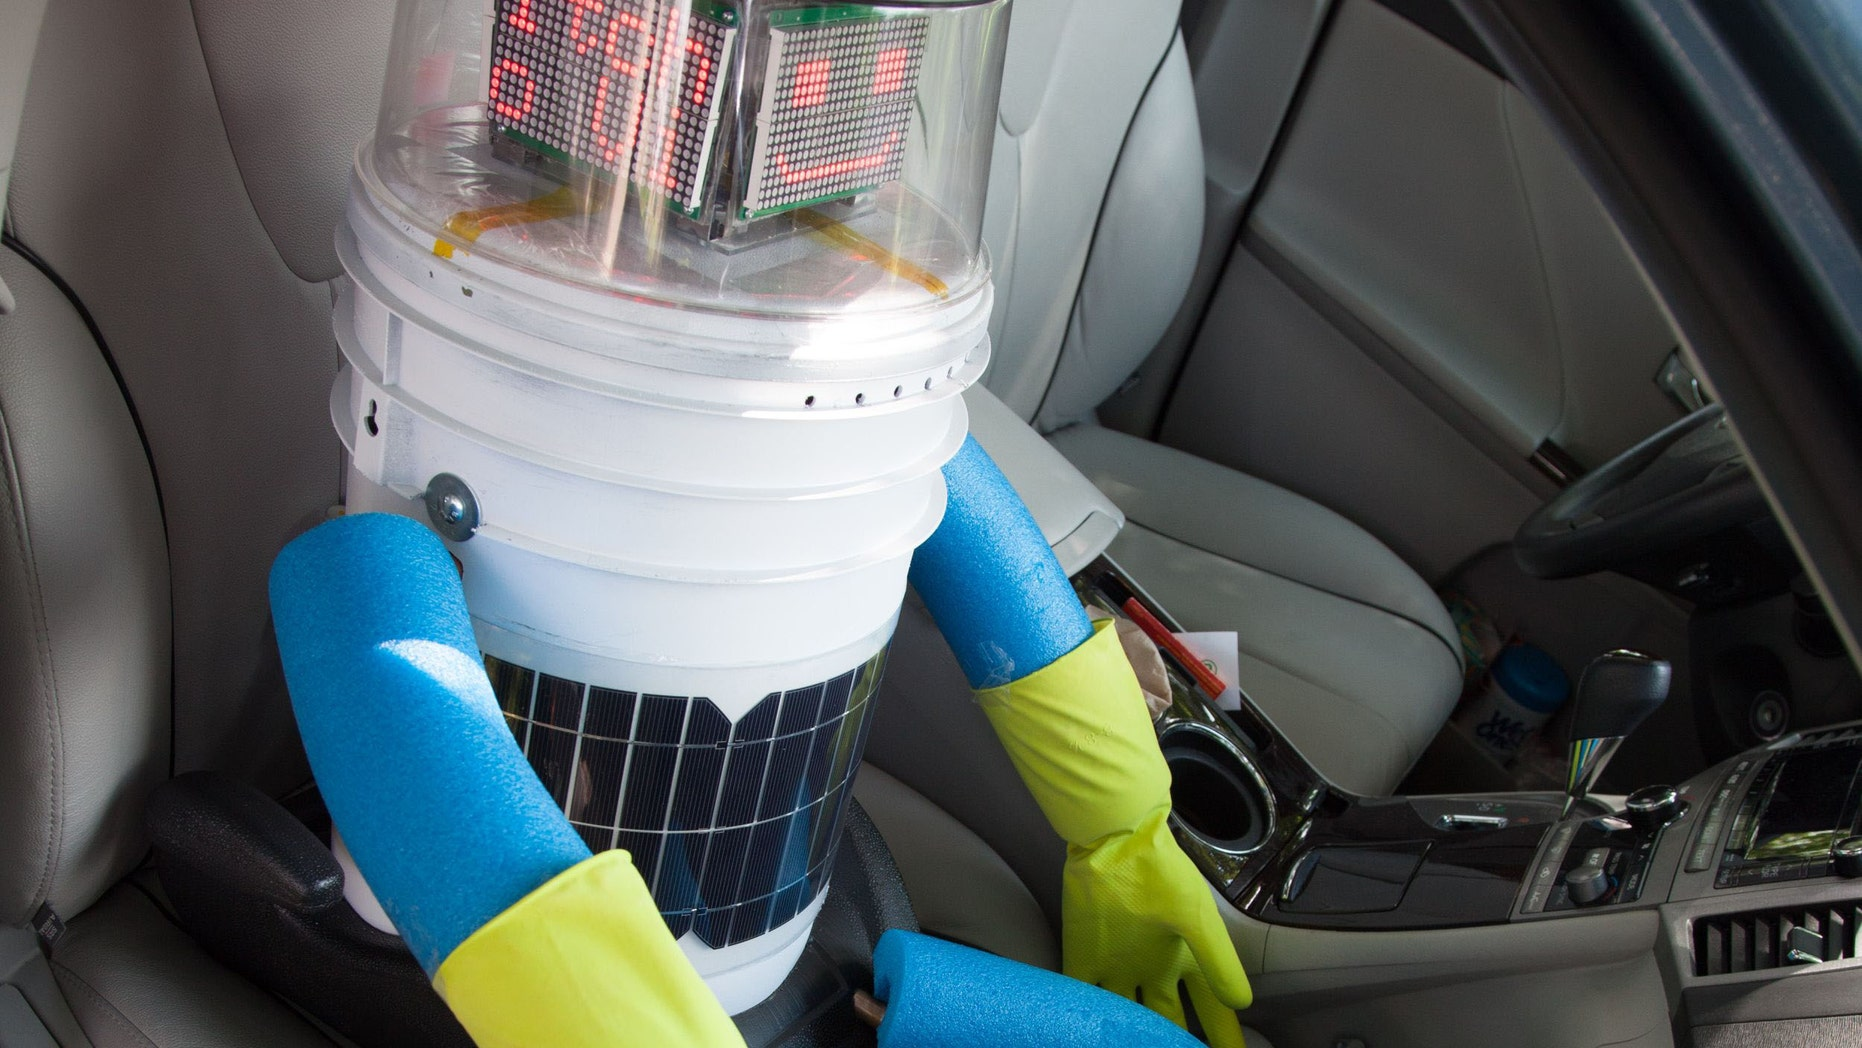 This undated photo made available by Ryerson University in Toronto on Thursday, Aug. 14, 2014 shows hitchBOT in a car. The talking robot that's been hitchhiking rides from strangers to travel from Canada's east to west coast is nearing the end of its journey. Its final destination is Victoria, British Columbia, Canada which its creators expect it to reach by Aug. 17, 2014. (AP Photo/Ryerson University)